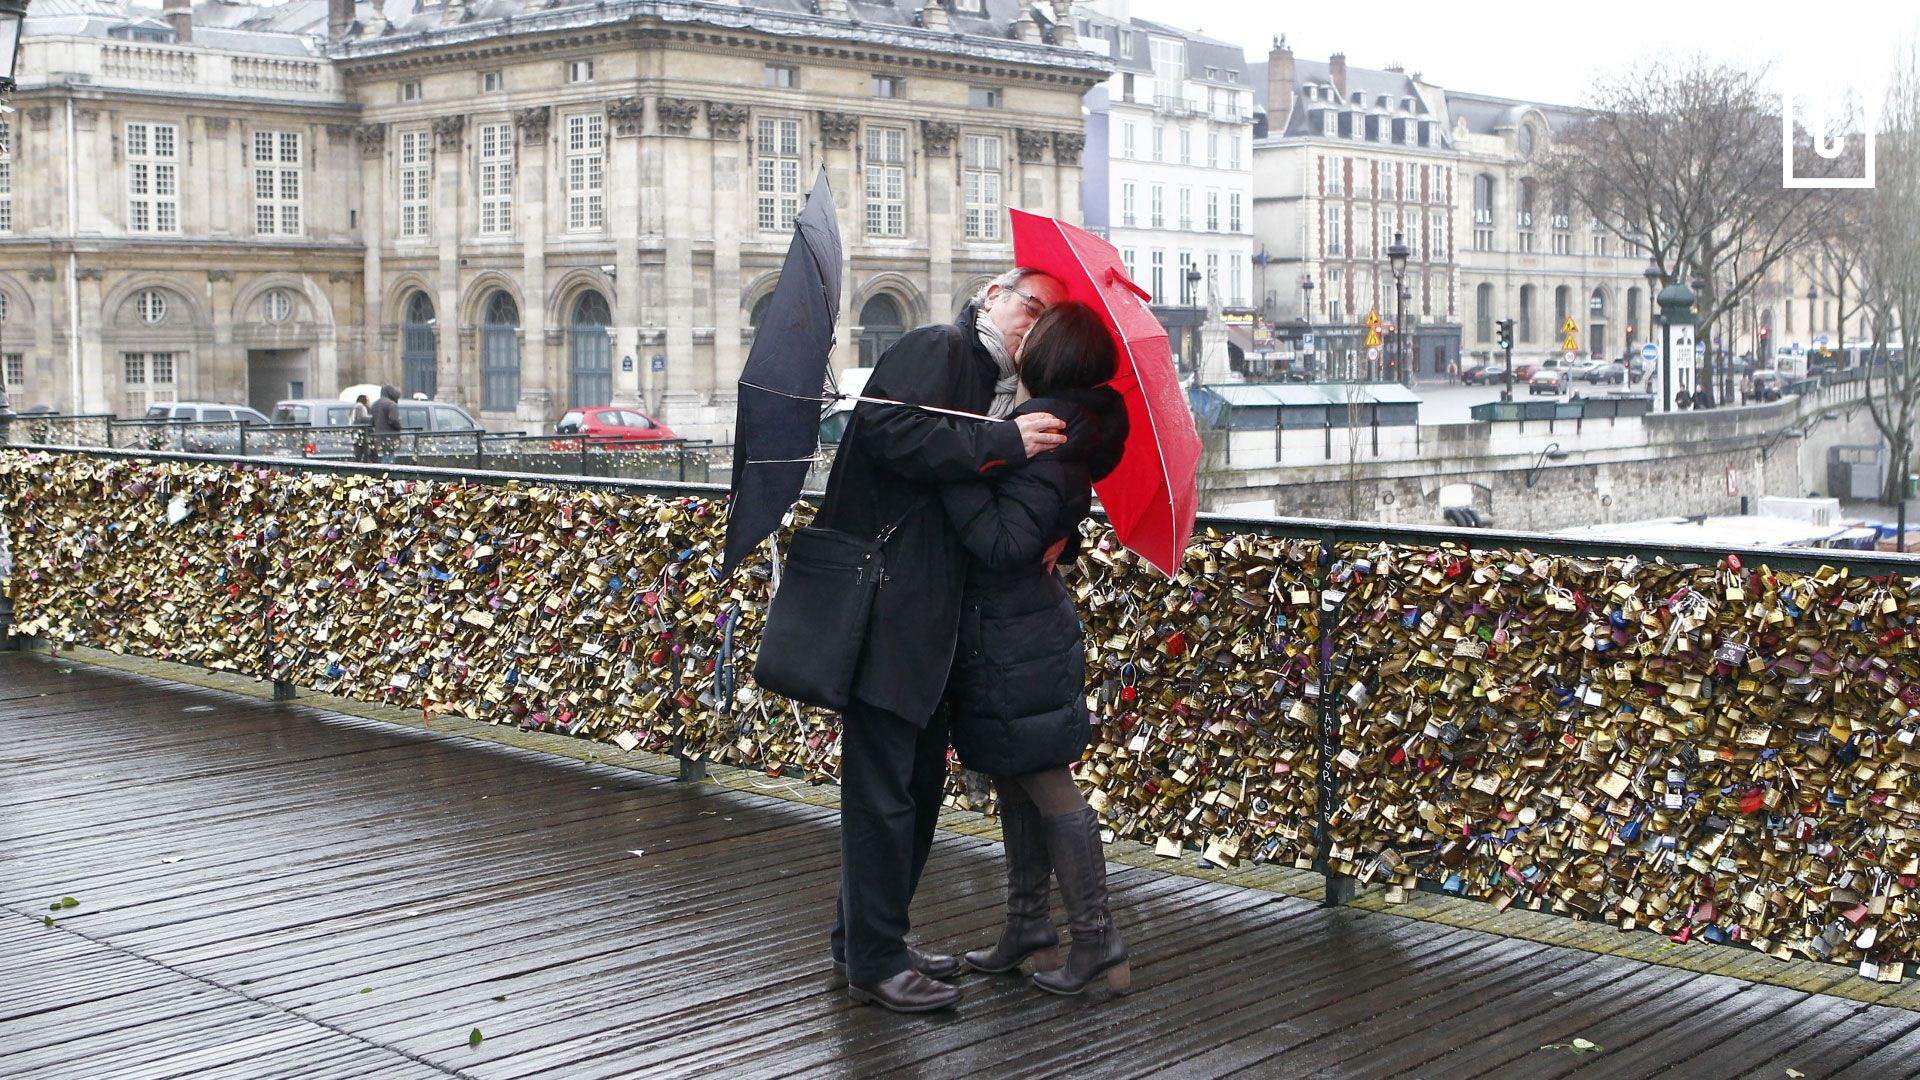 9fa1bffaa0fb Love locks : How did the phenomenon begin? - Curbed